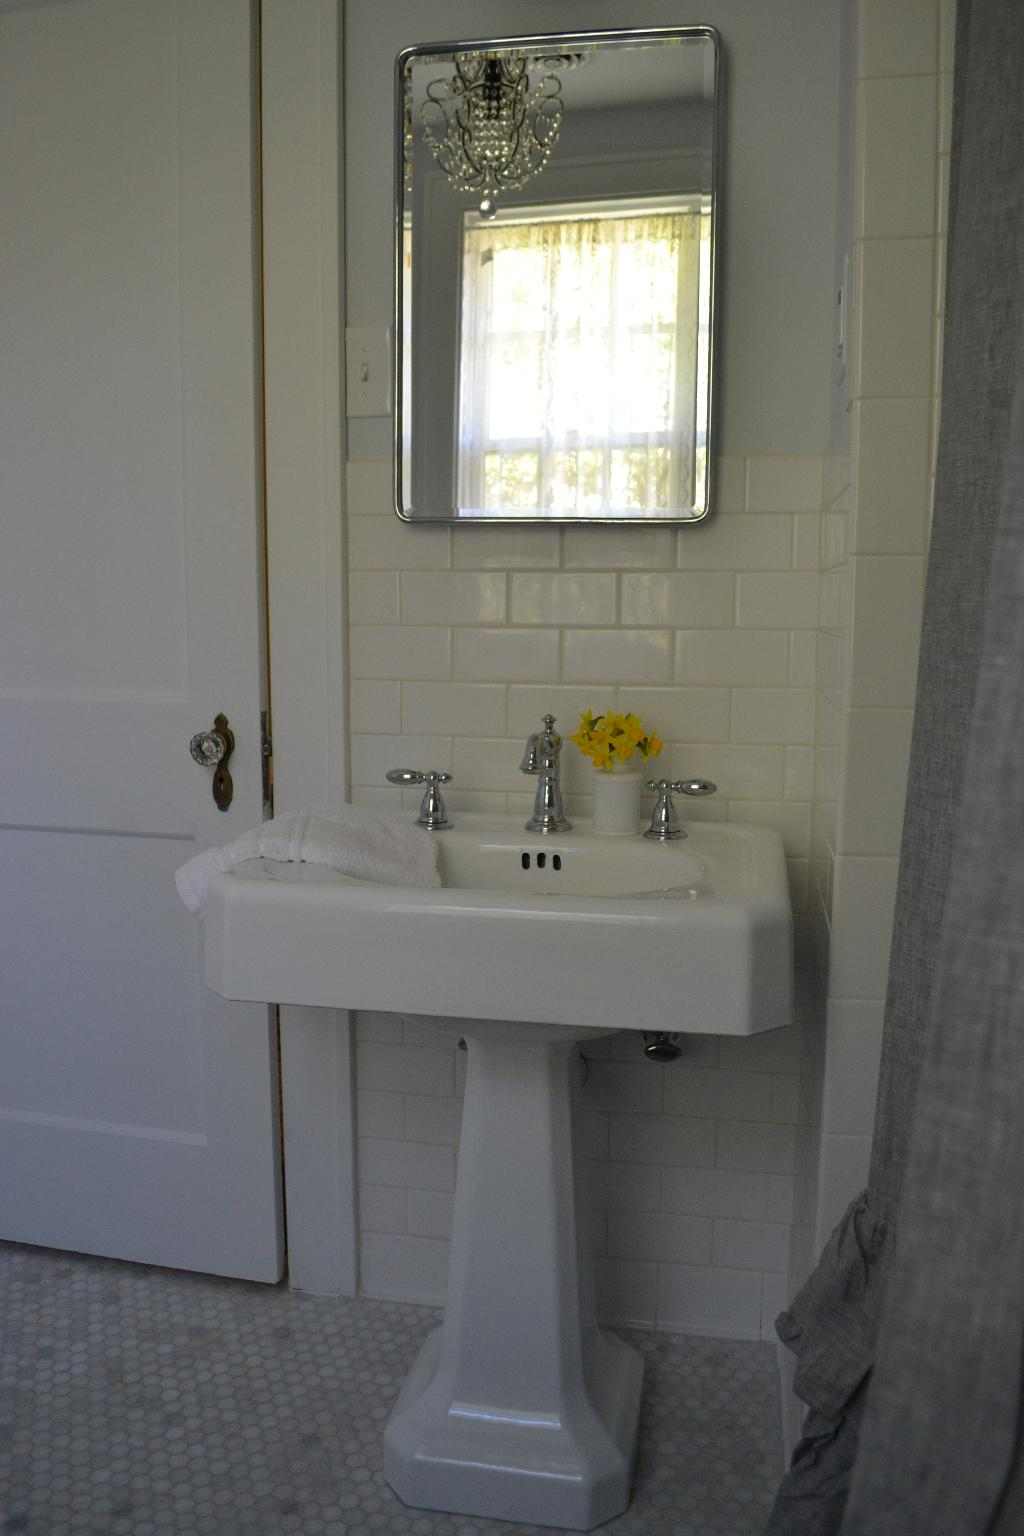 Cottage Fix - refinished vintage sink, Delta faucet, marble hes tiles, and sparkly chandy